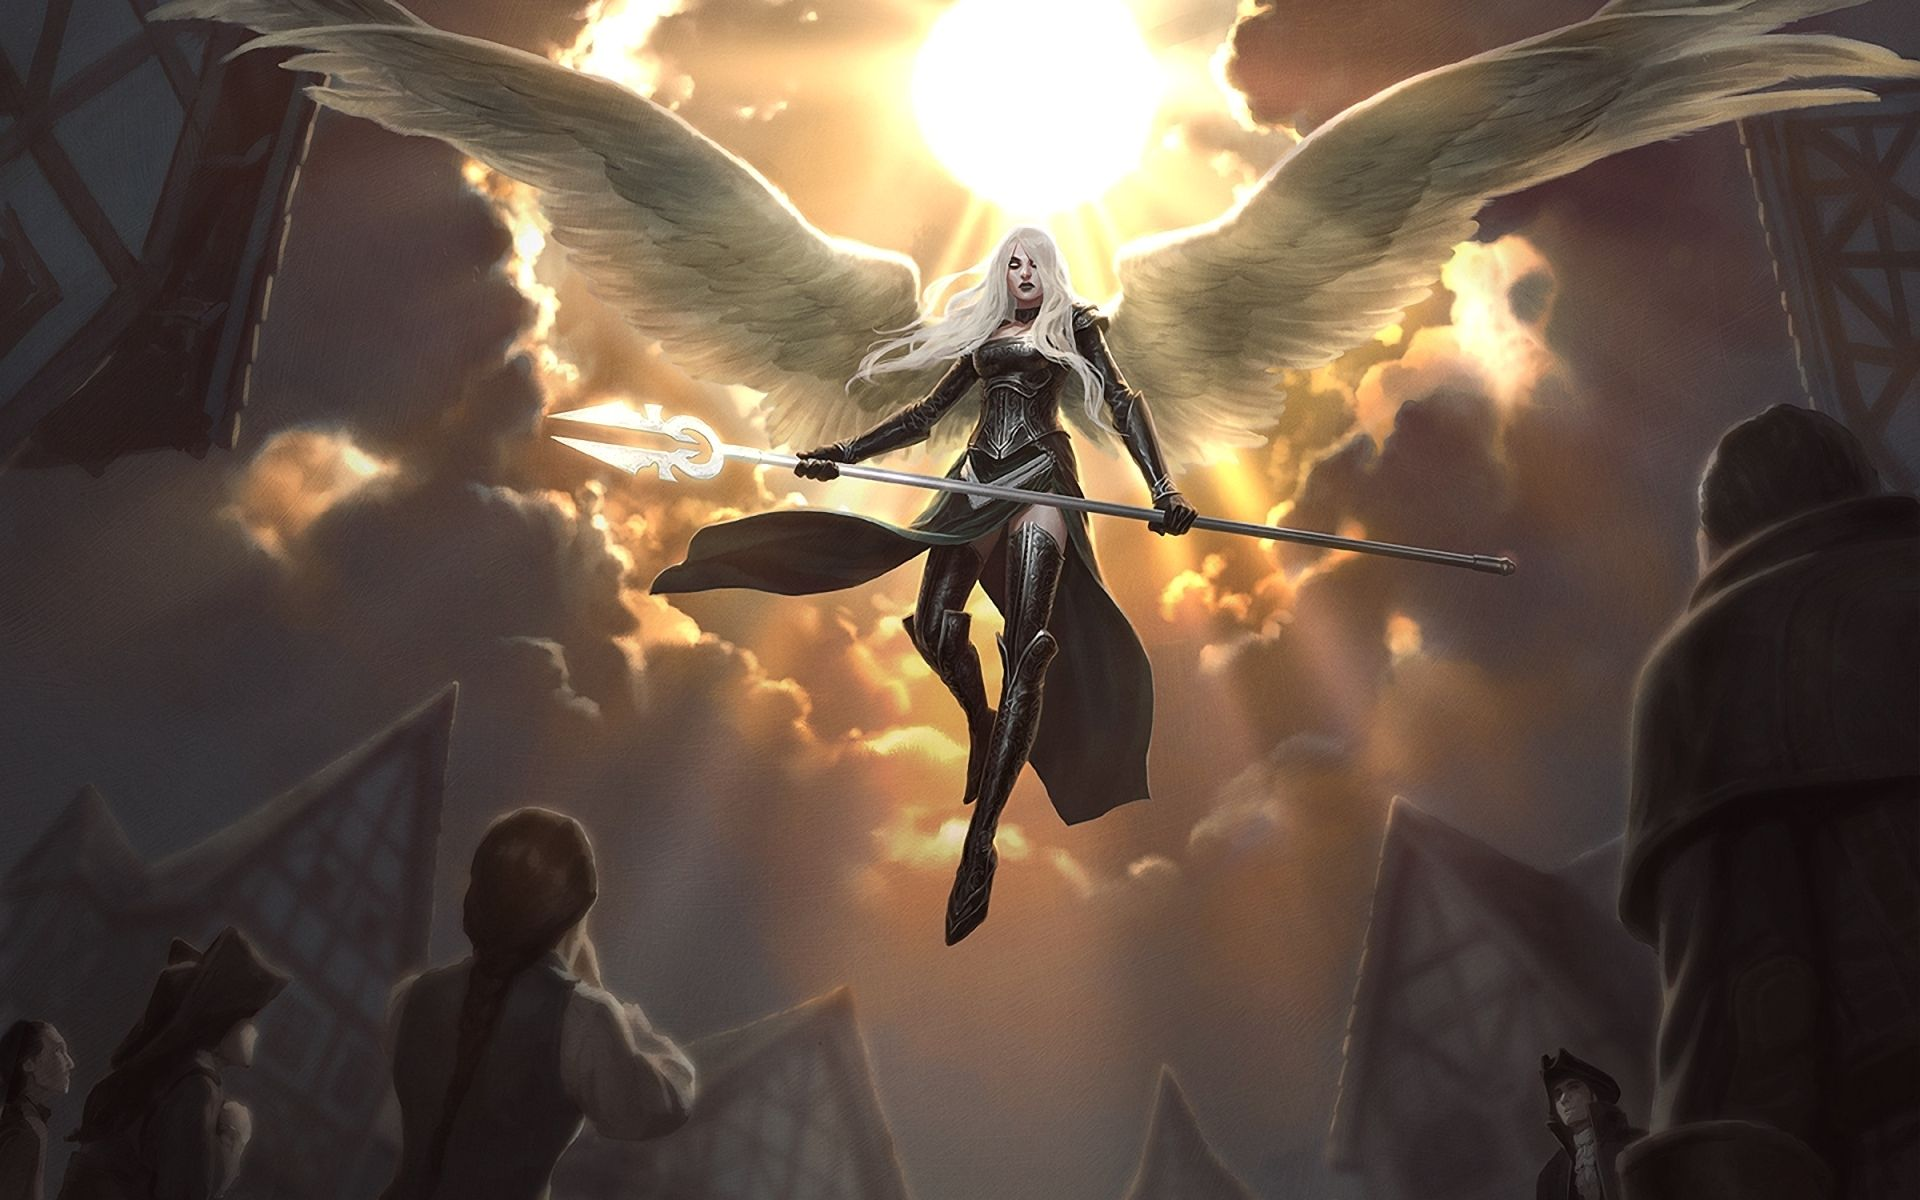 Magic the gathering yahoo image search results enchanted magic the gathering yahoo image search results voltagebd Images